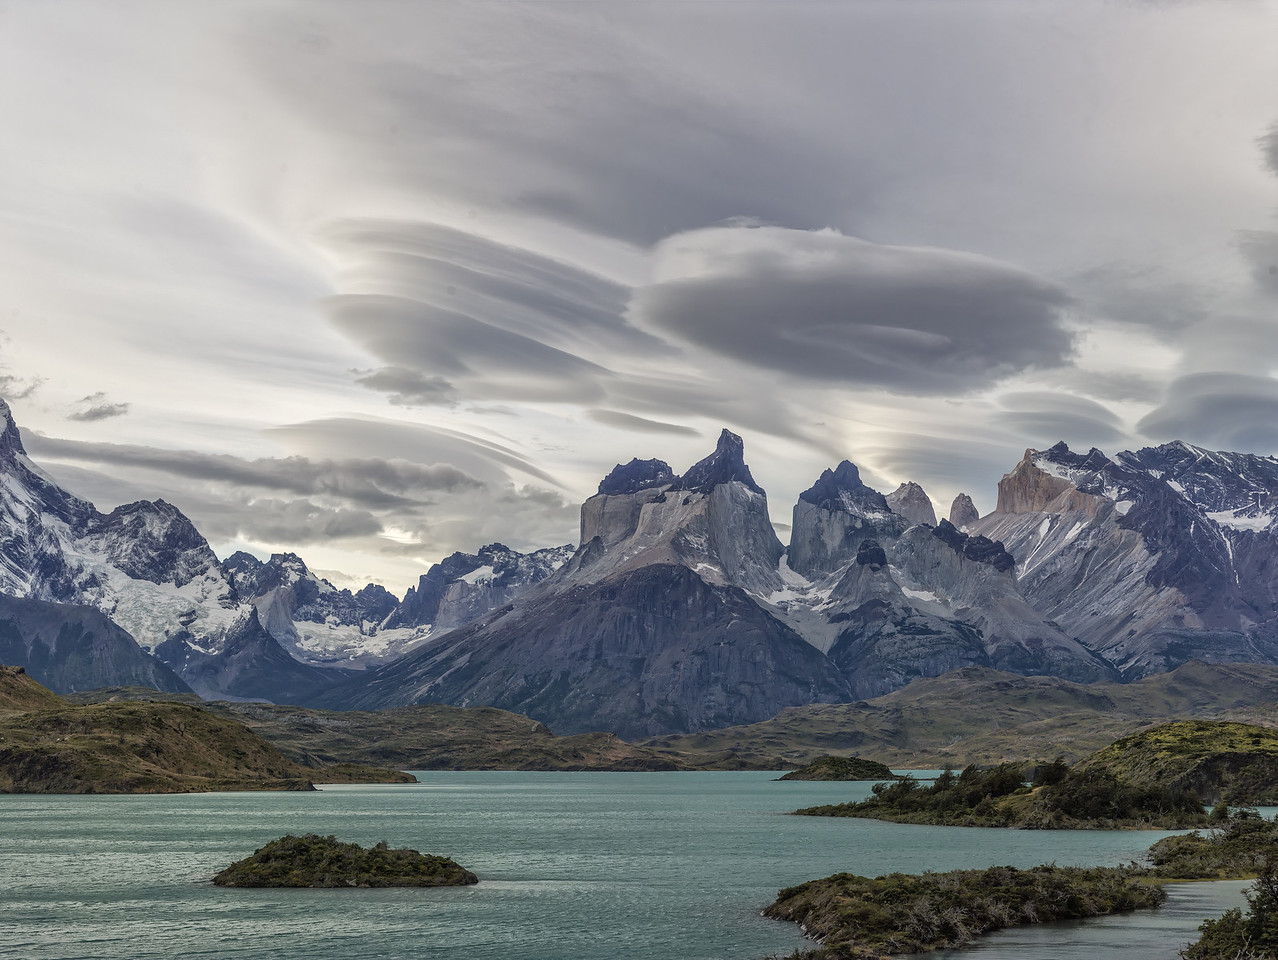 Clouds and Torres del Paine, Patagonia, Chile